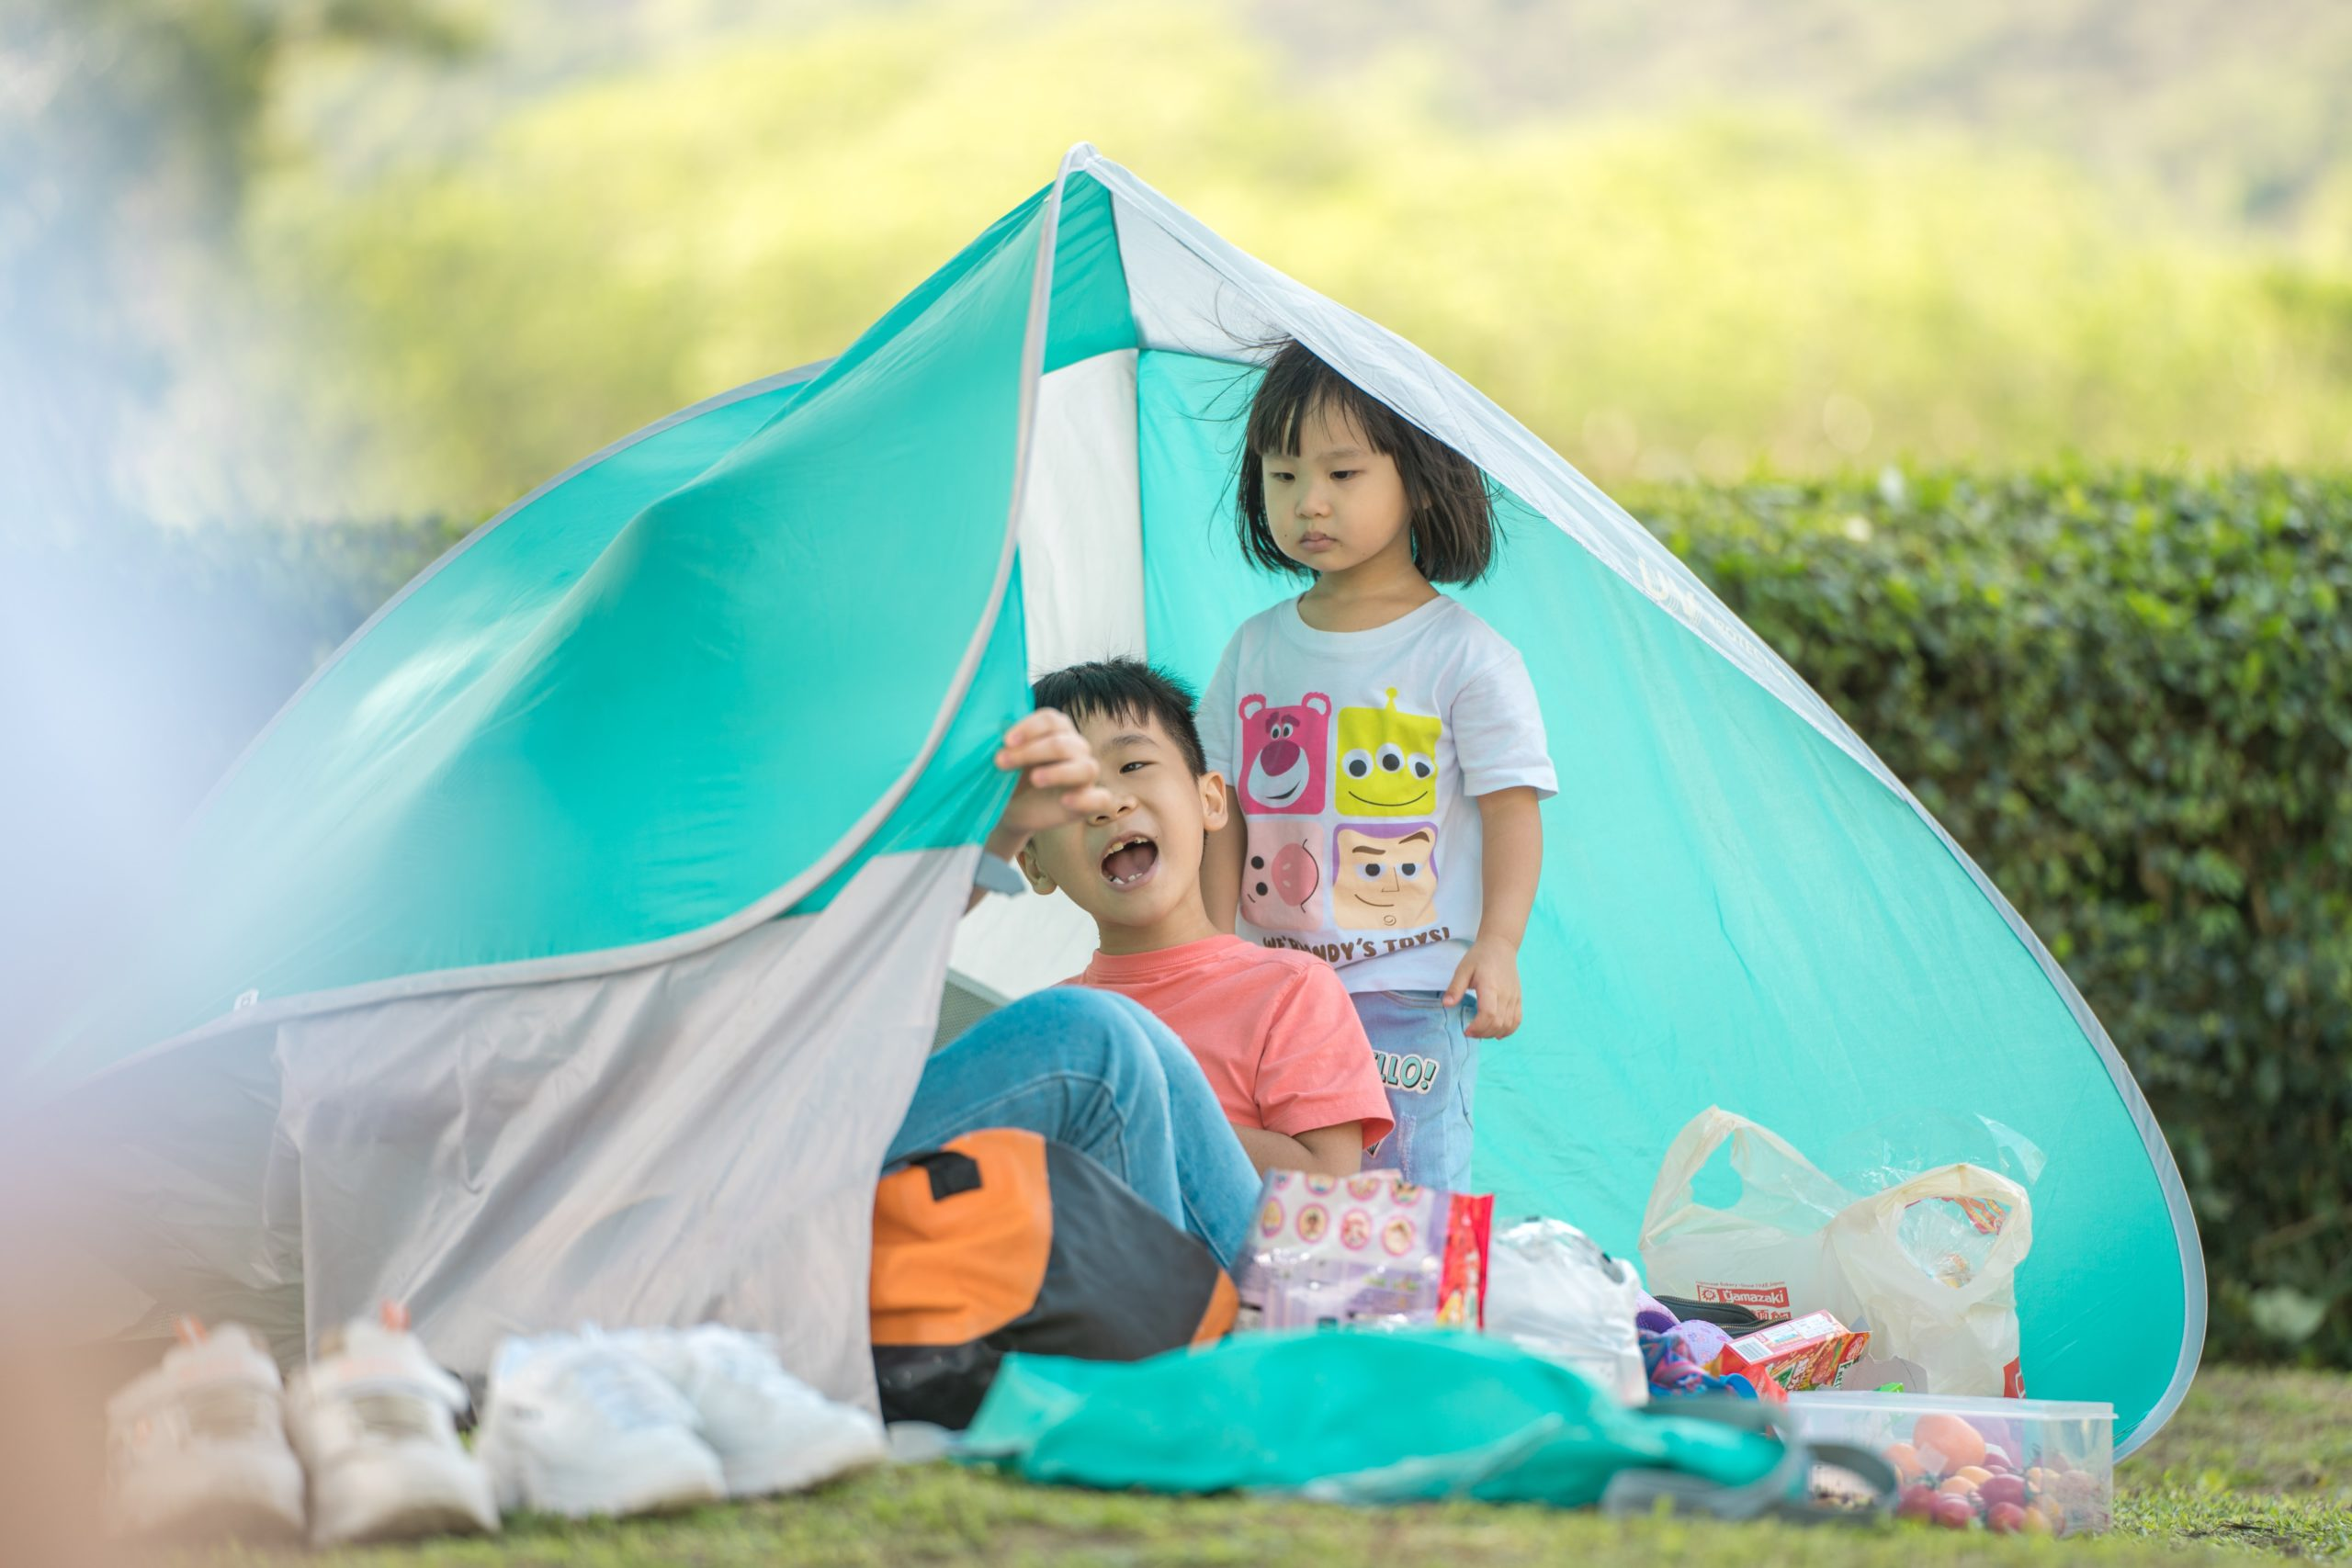 4 Family-Friendly Staycation Ideas That Don't Require Leaving the House